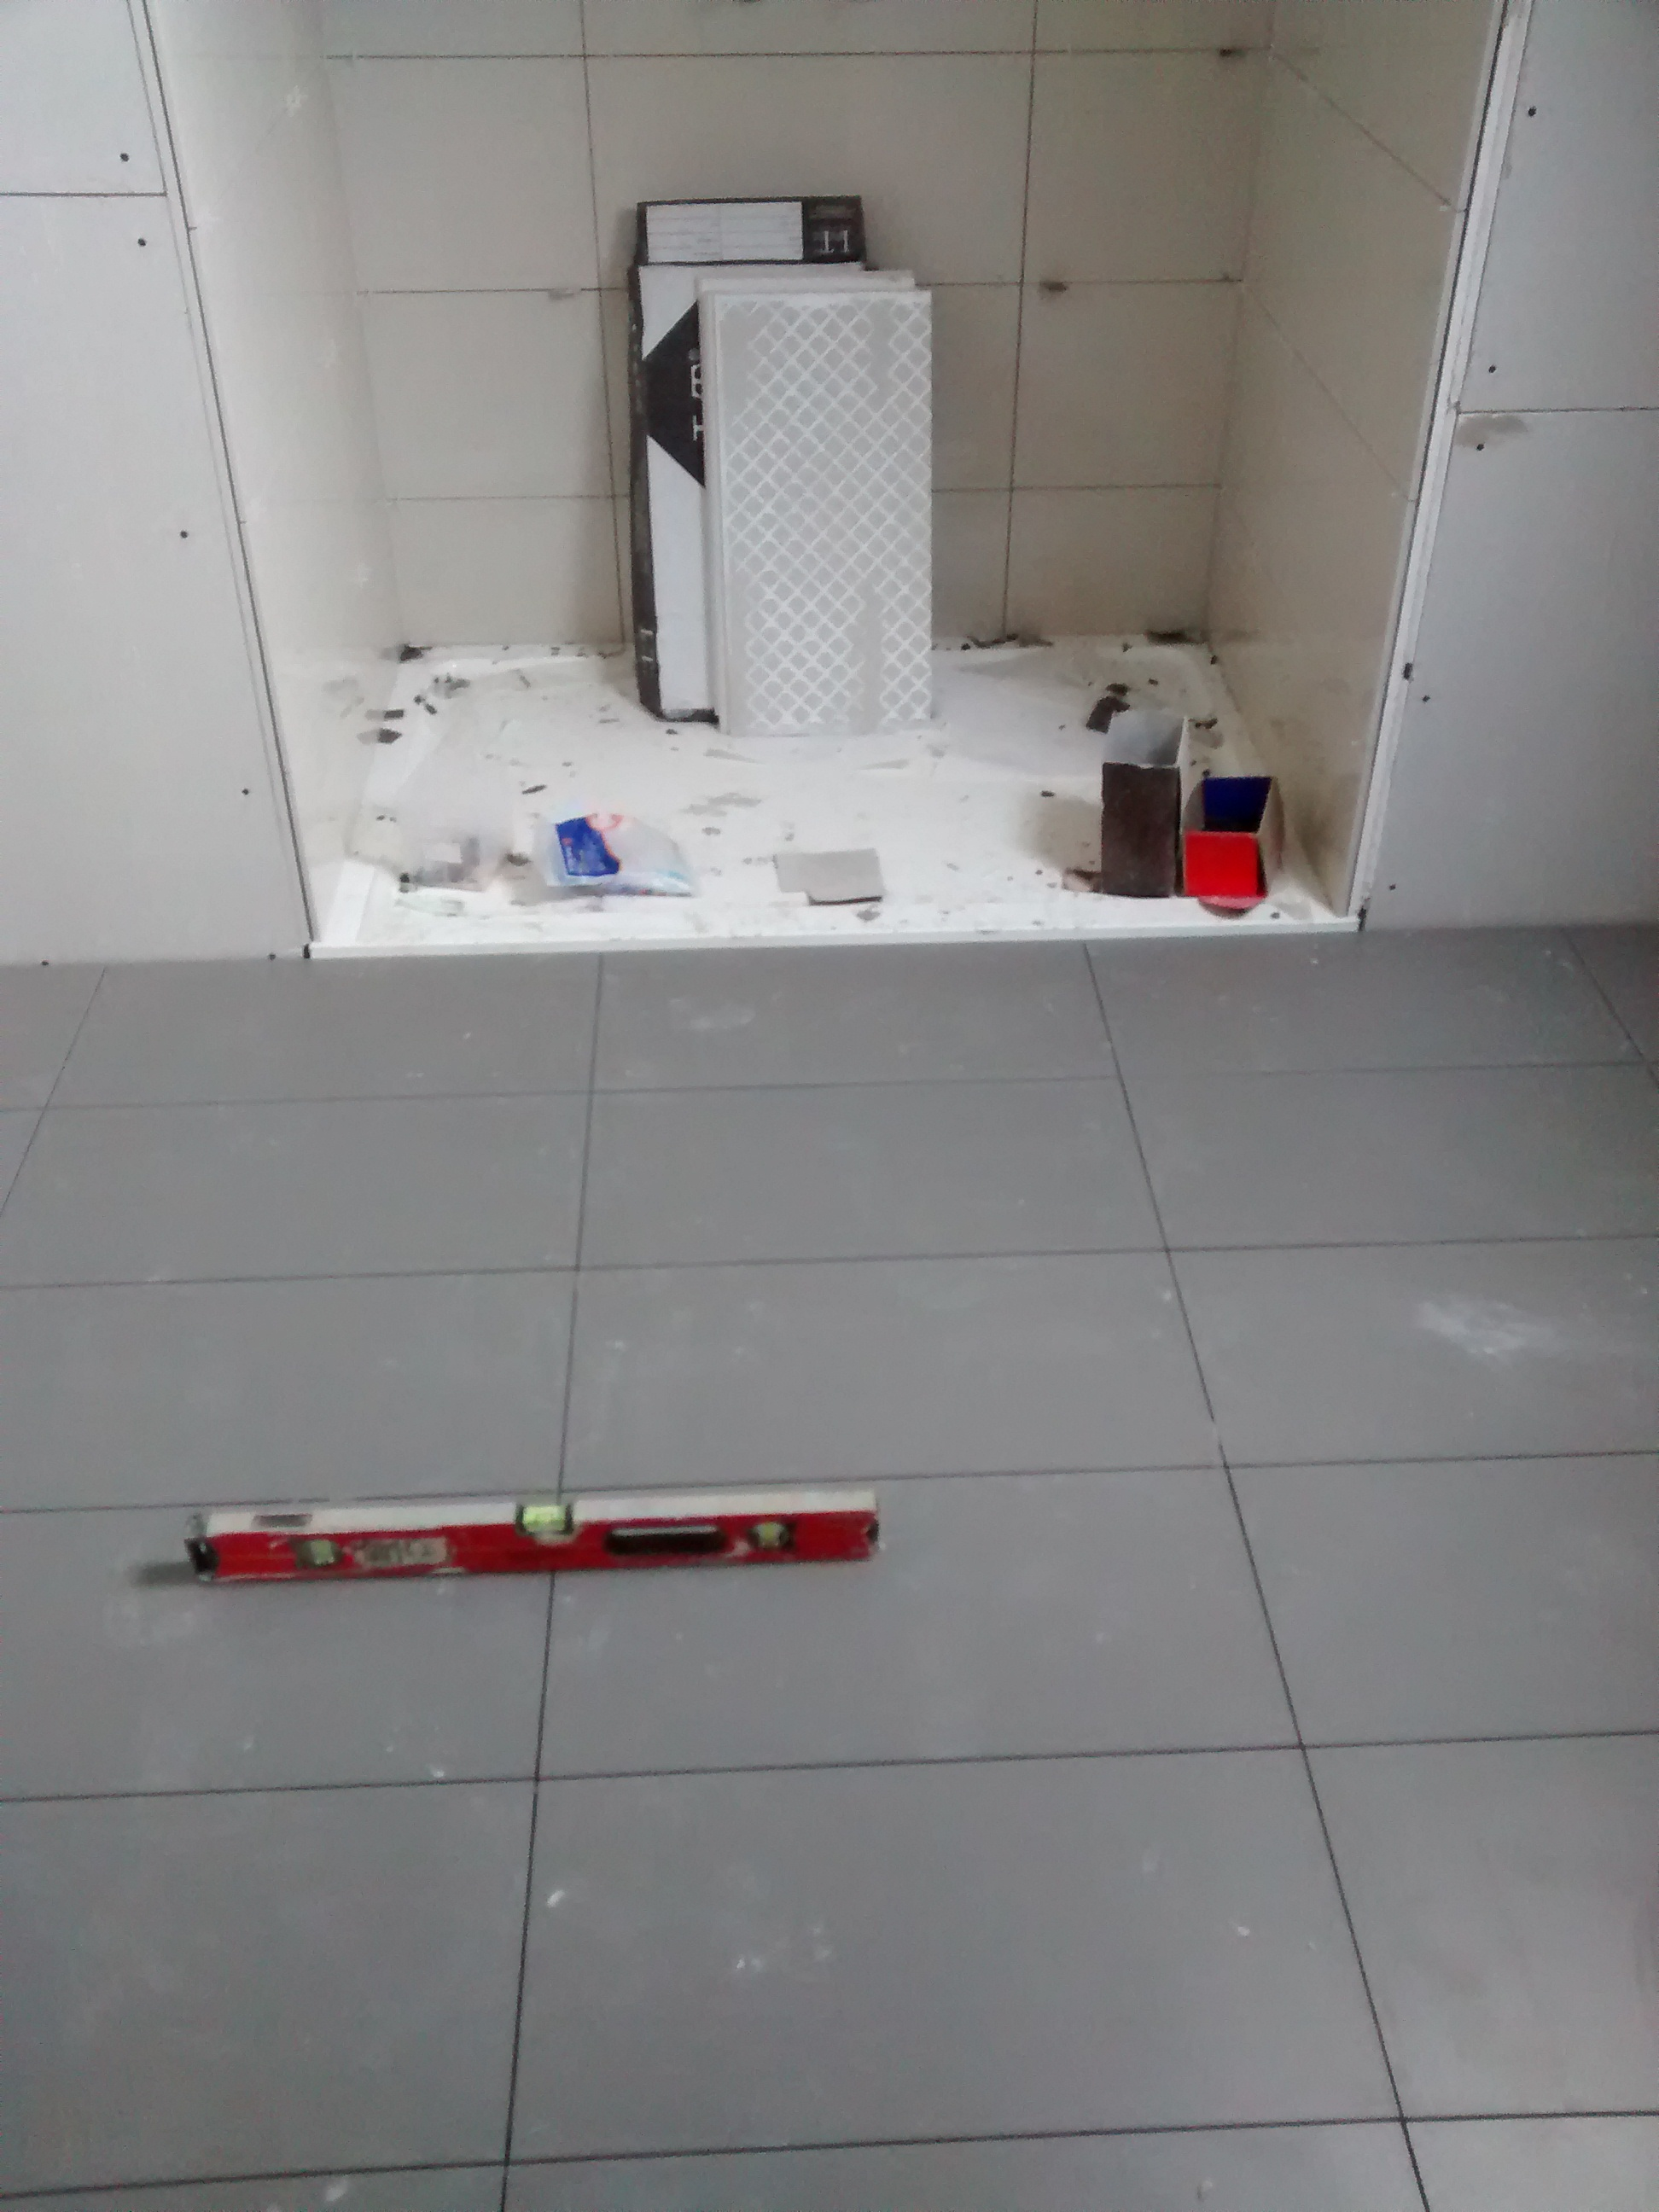 ensuite floor tiled